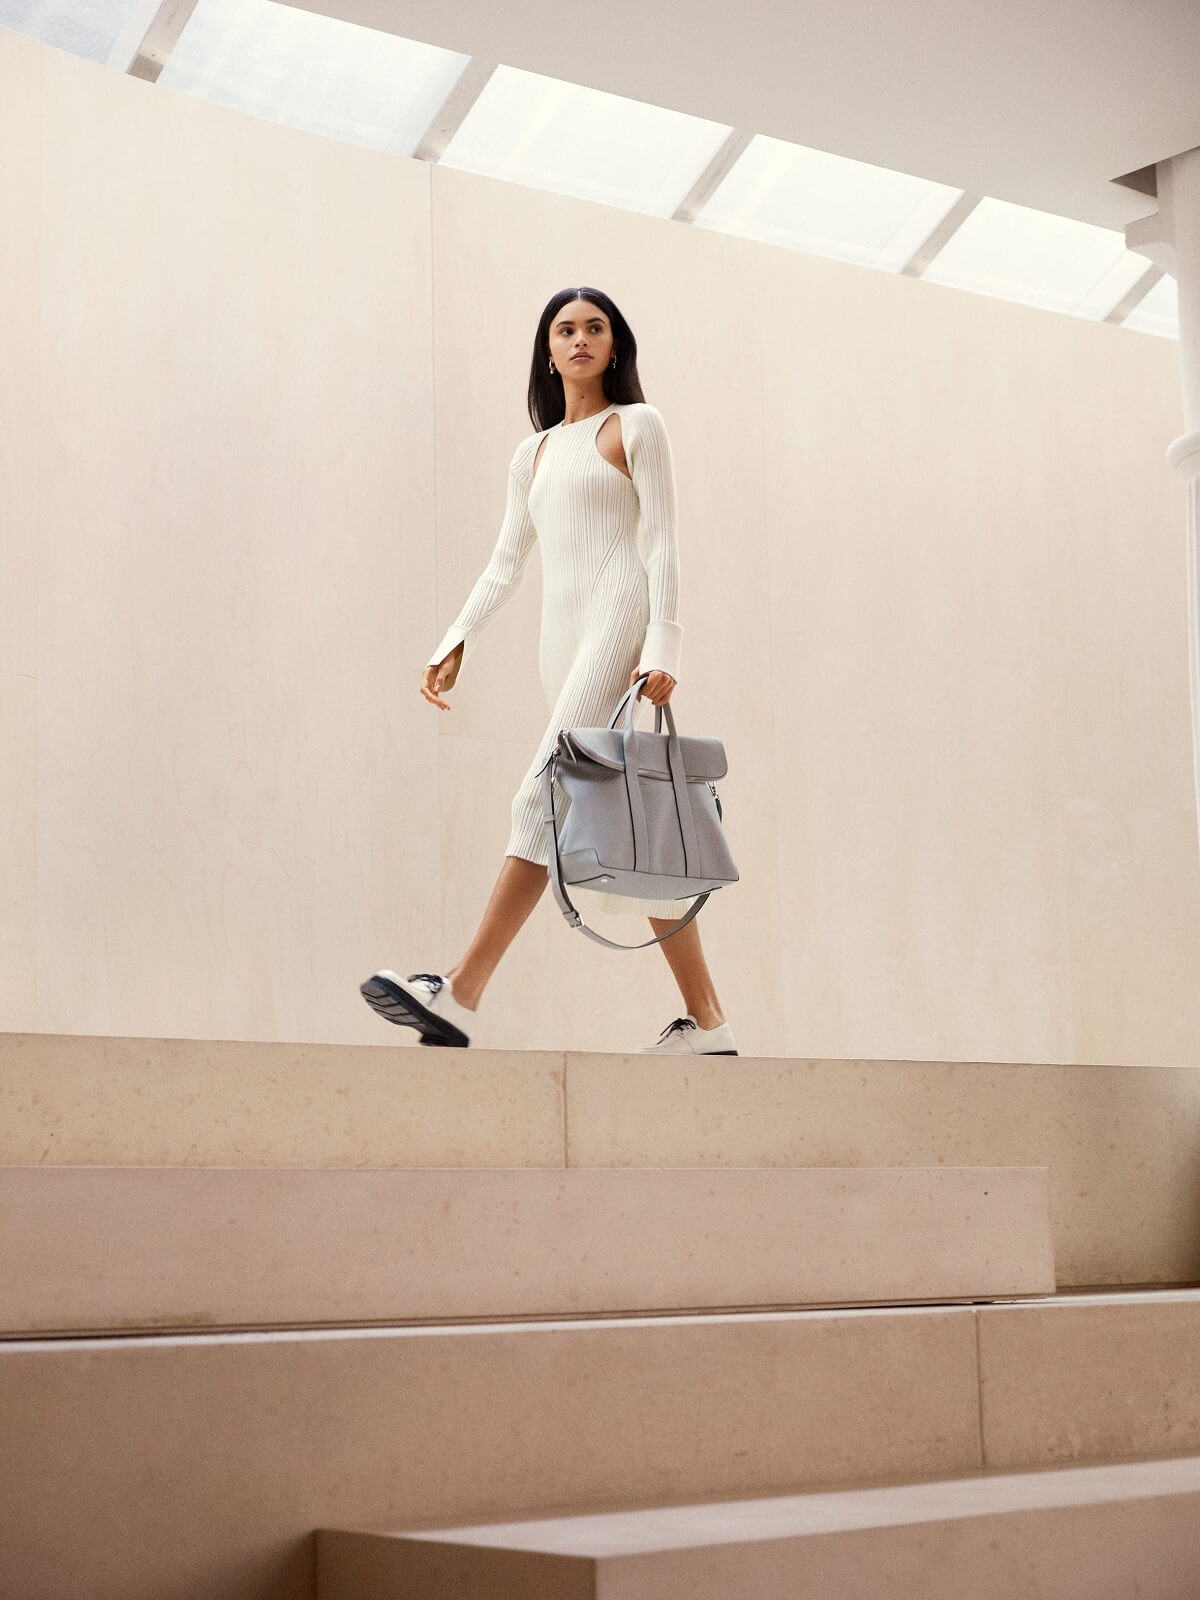 287058_Volvo_Cars_teams_up_with_3_1_Phillip_Lim_and_launches_sustainable_weekend.jpg